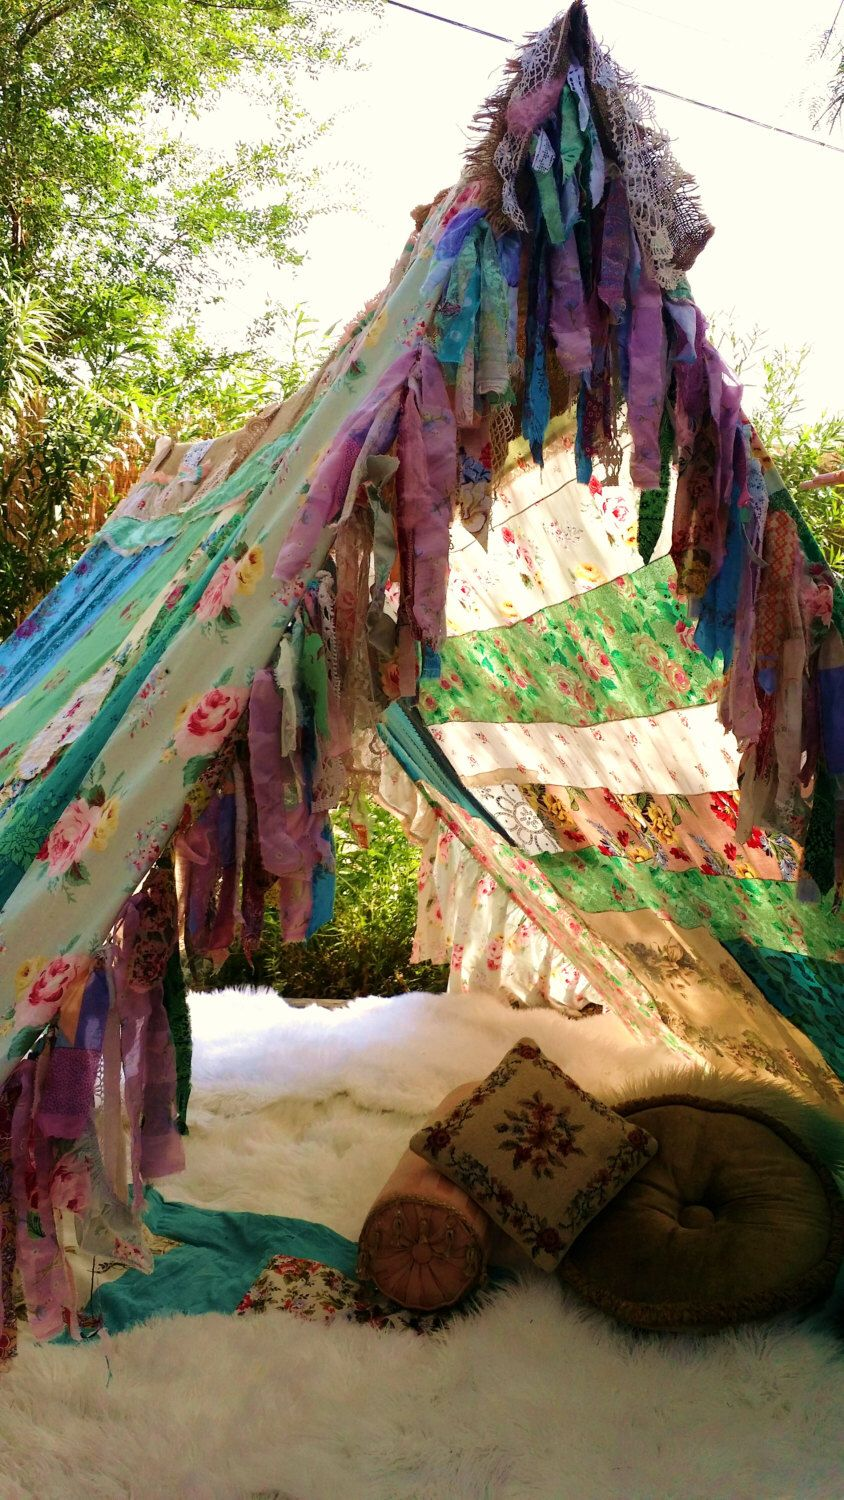 Gypsy shabby chic curtains - Boho Tent Glamping Teepee Vintage Scarves Gypsy Hippie Patchwork Bed Canopy Wedding Curtain Photo Prop Festival Bohemian Shabby Chic Hippy By Hippiewild On